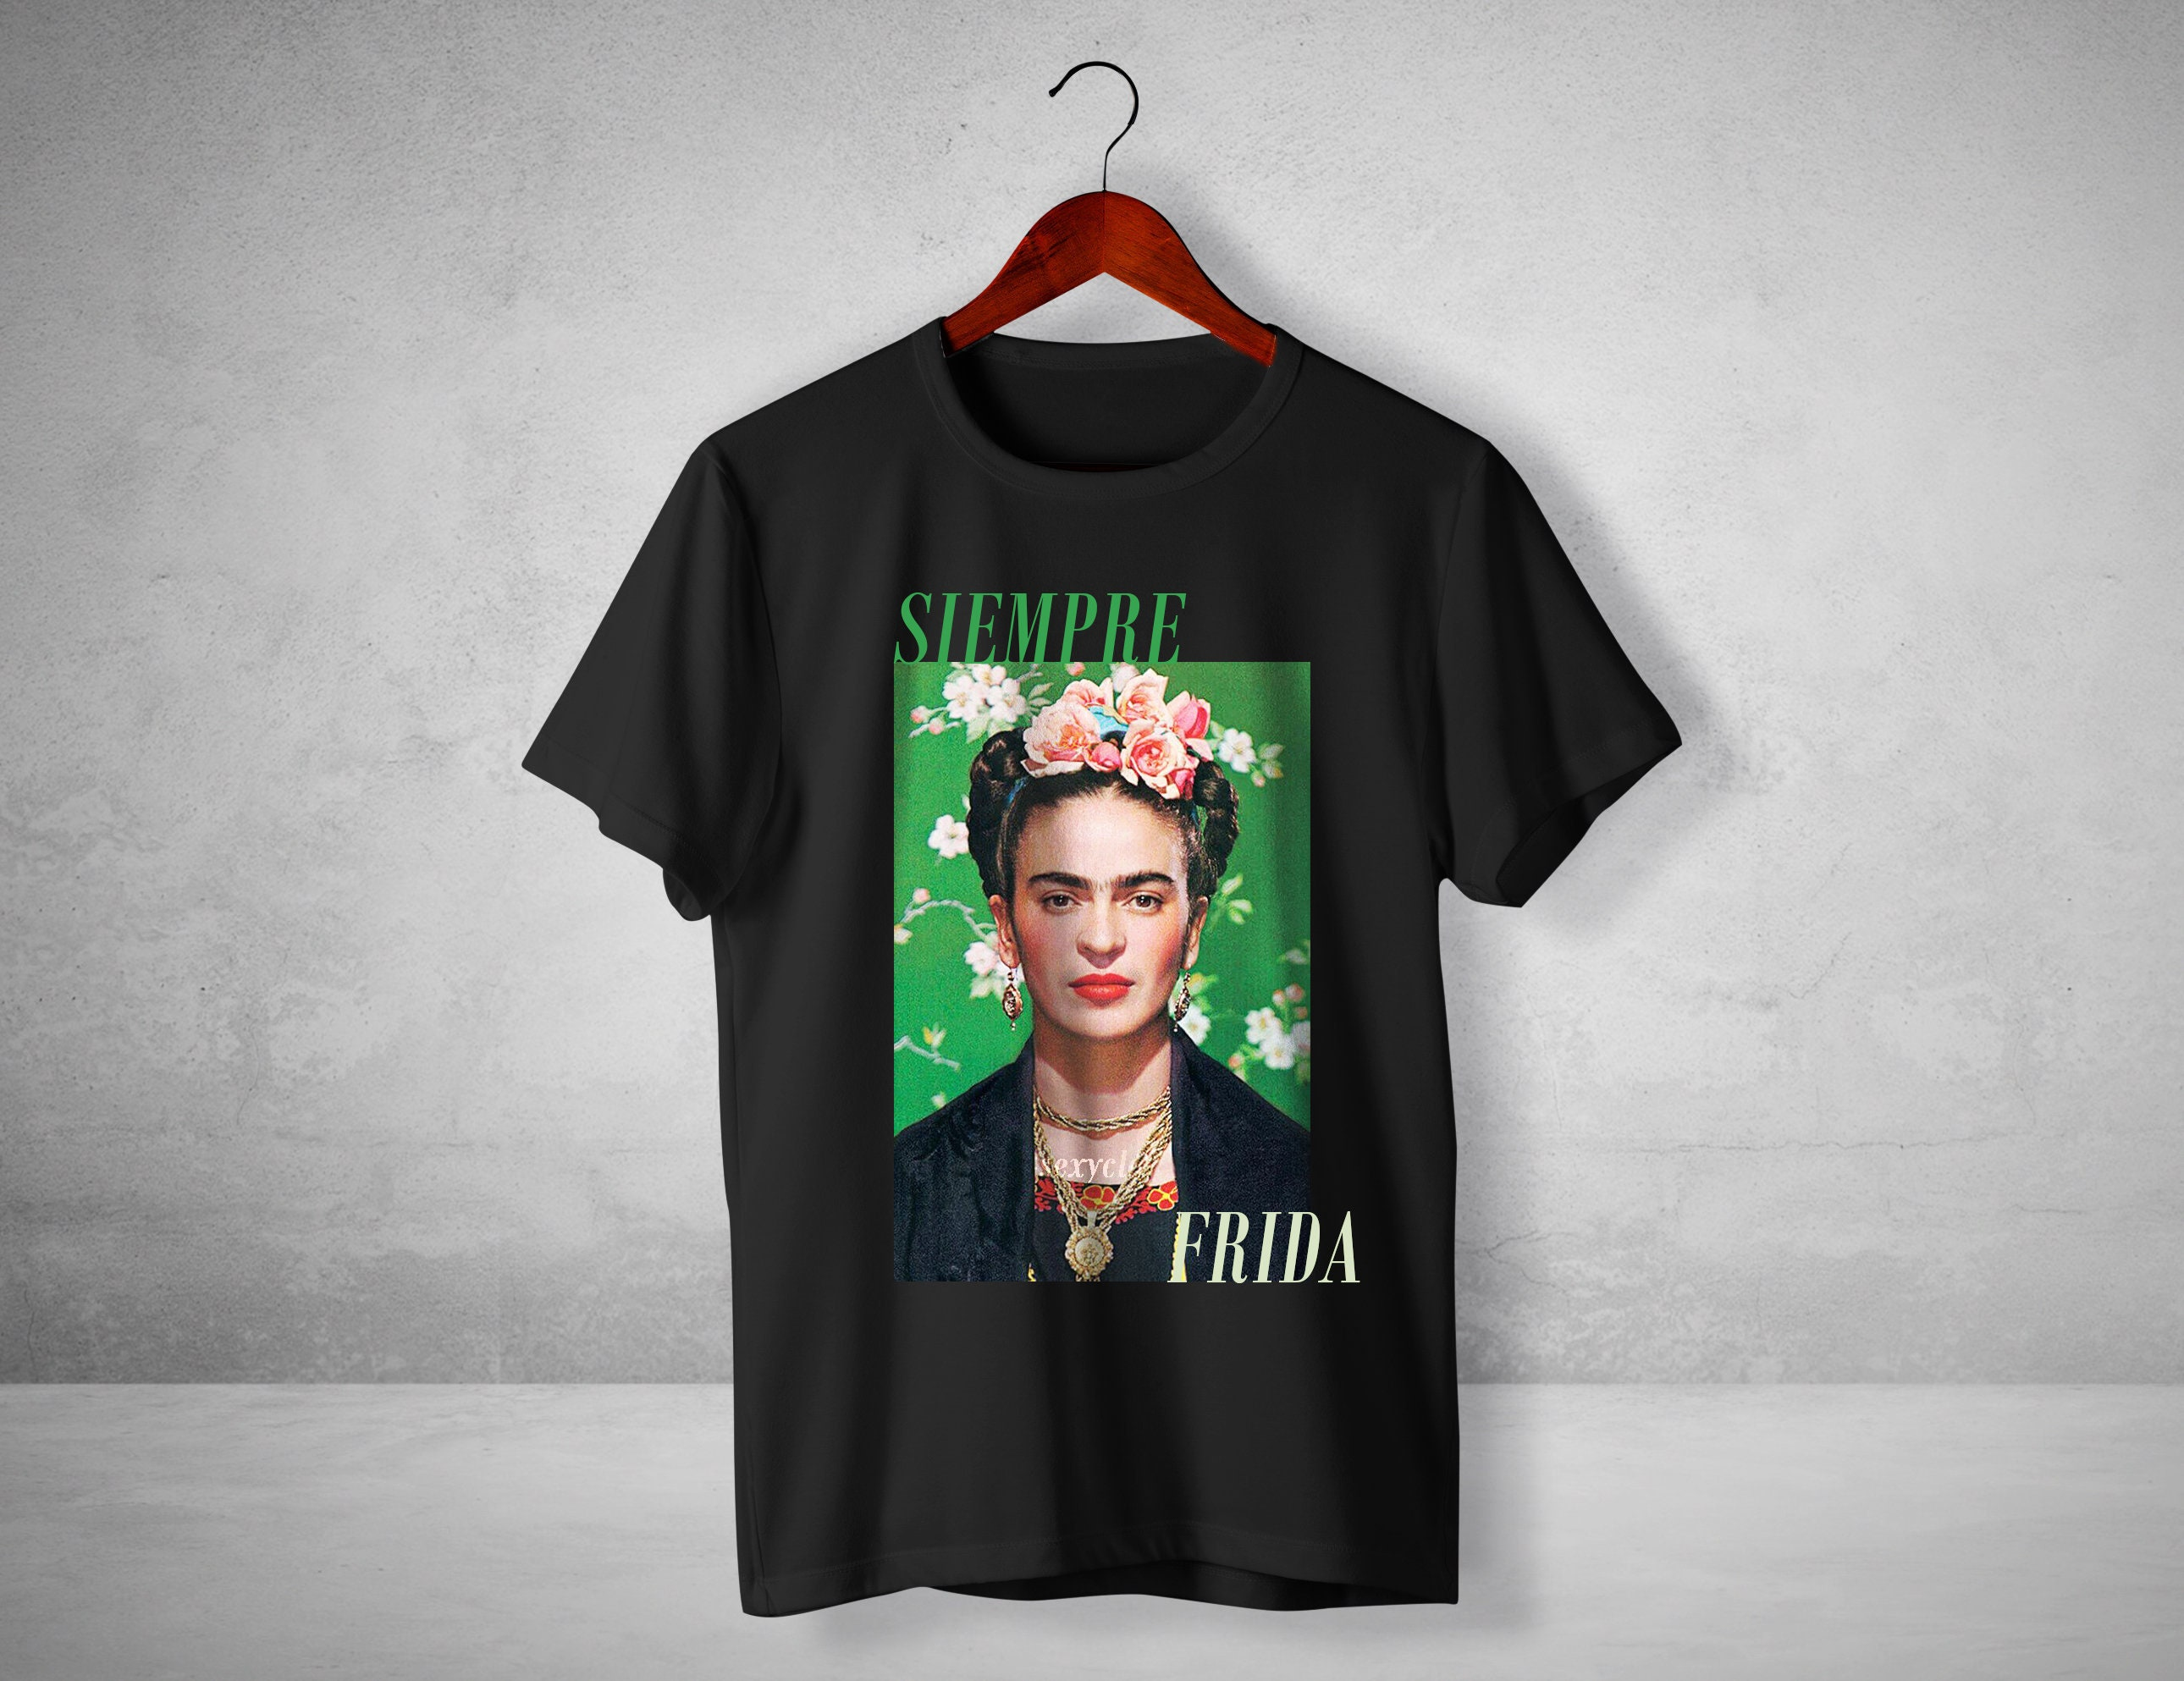 10ce60fda Trending now spring 2019 fashion! Frida Kahlo premium quality cotton crew  neck women t shirt, womens spring fashion top